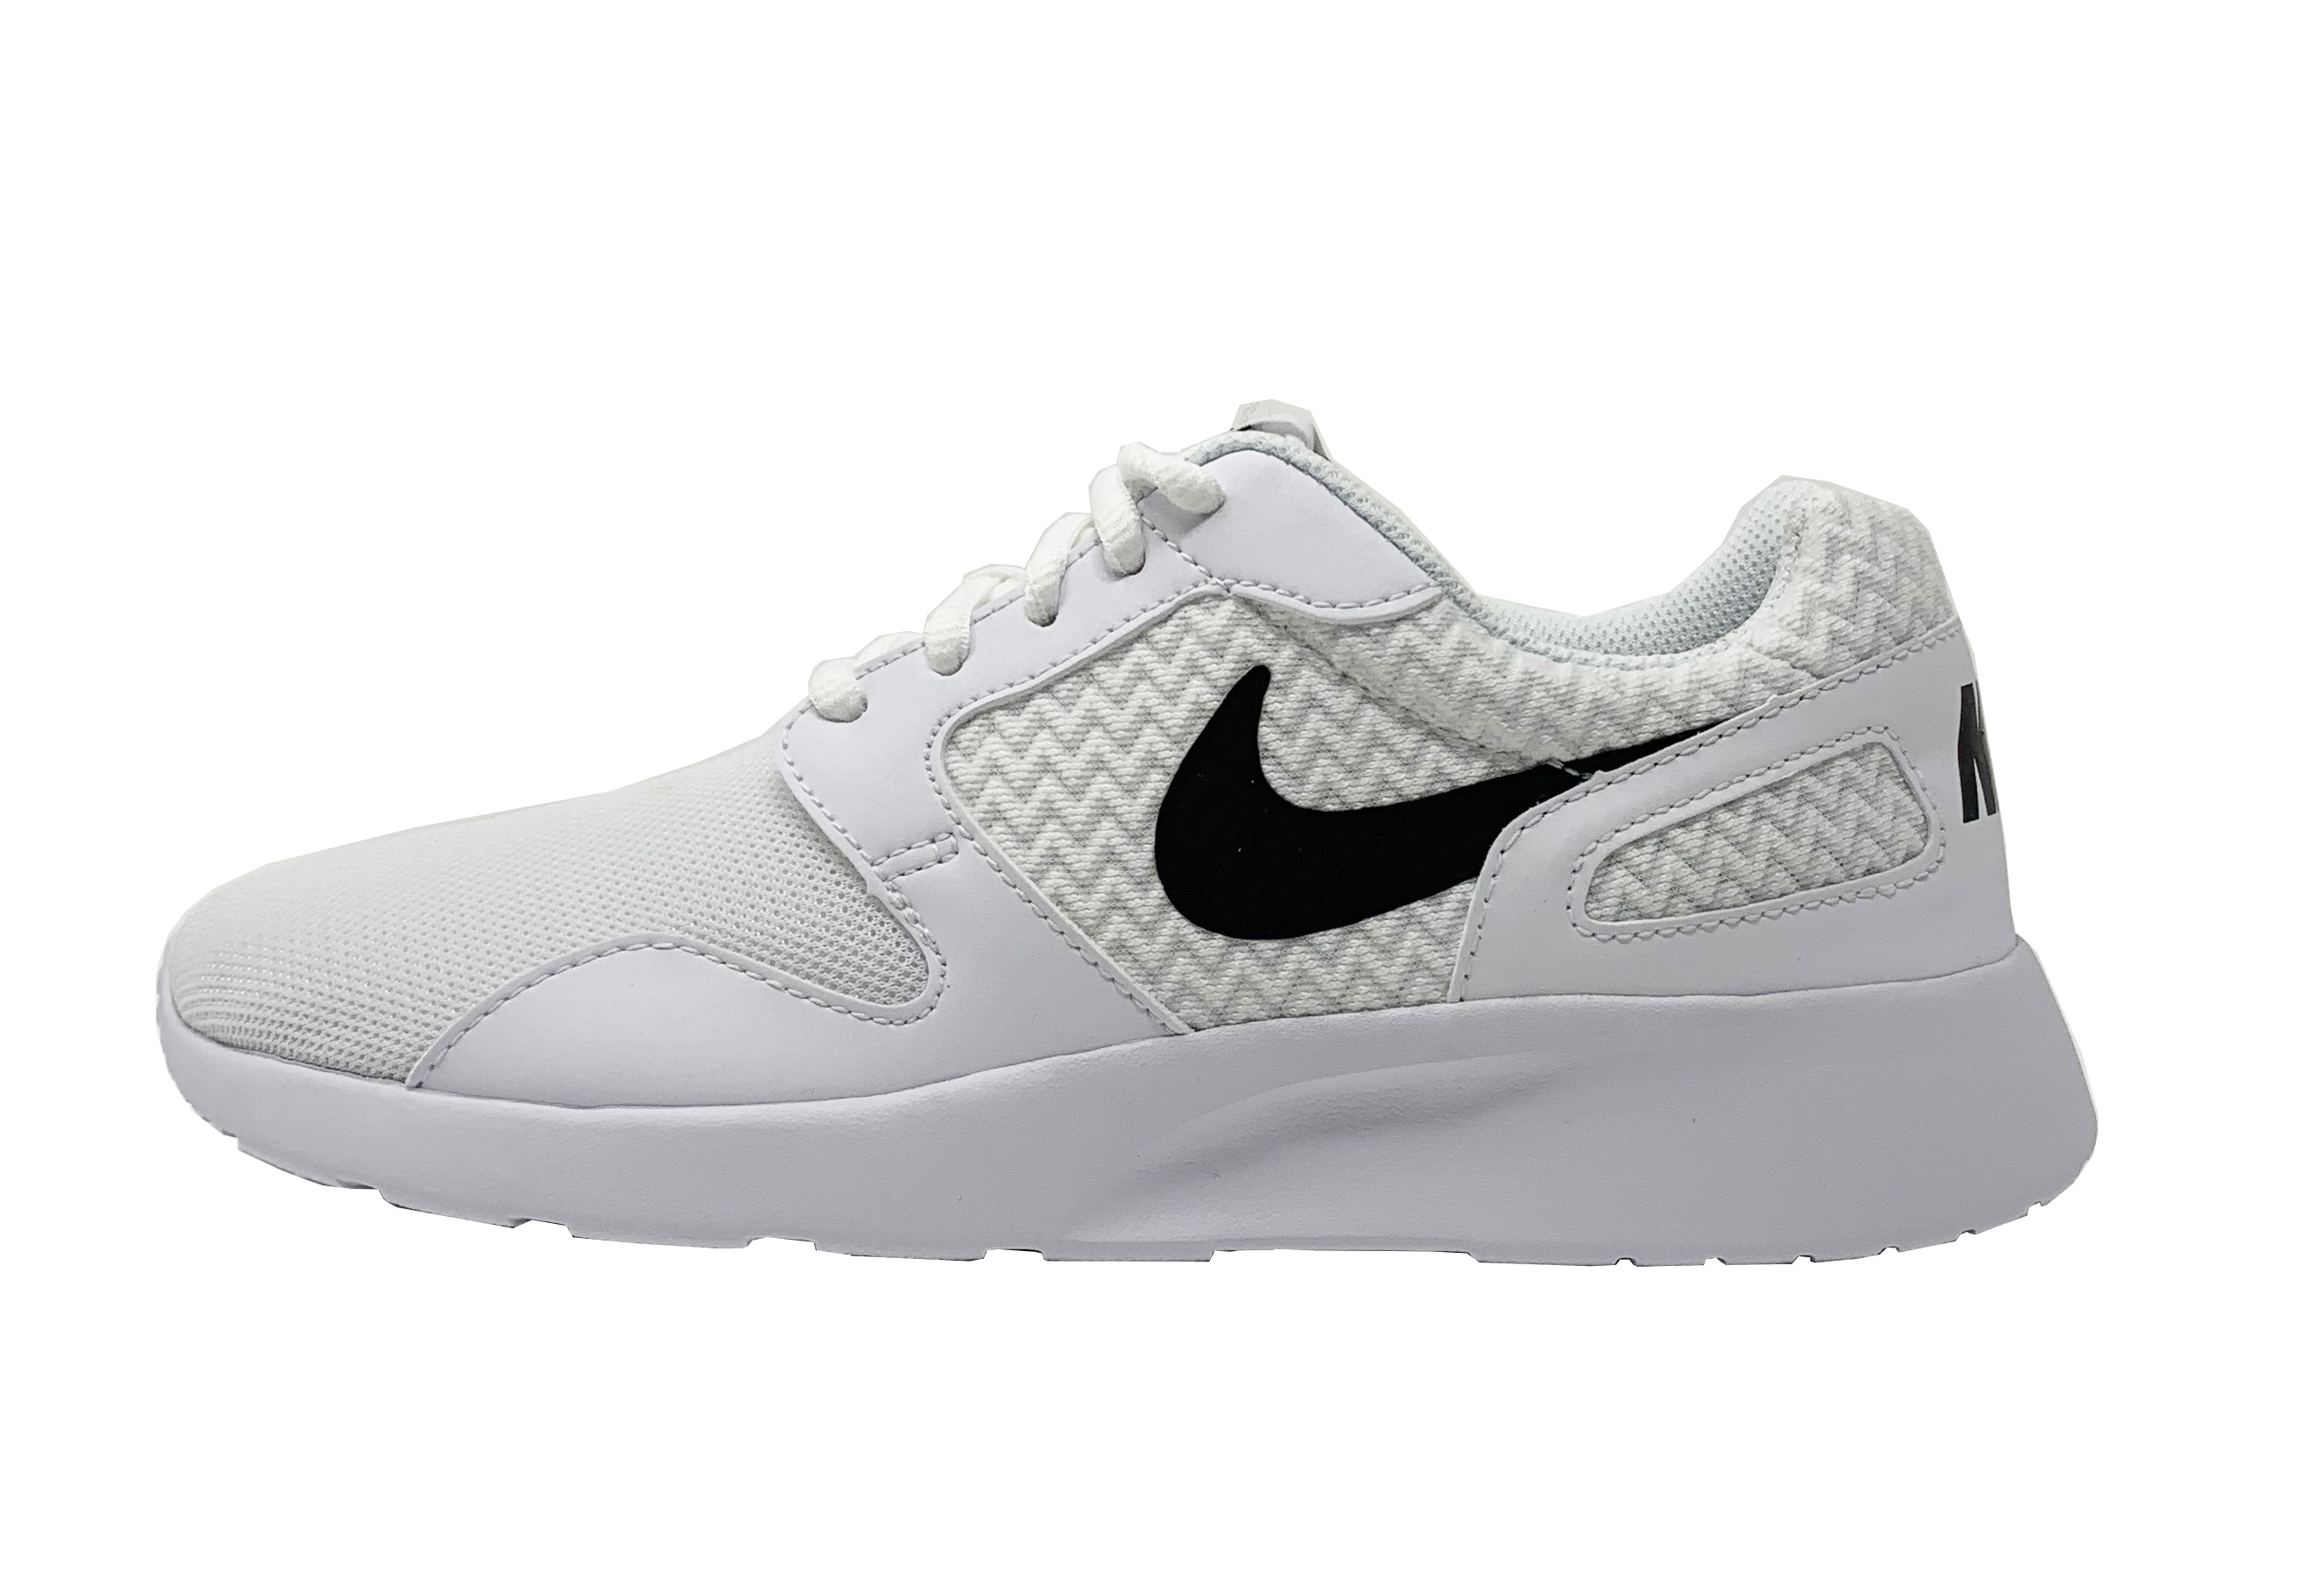 super popular 0728b dc03a ... inexpensive image is loading nike kaishi 654845 103 womens trainers  4f6ce d53f9